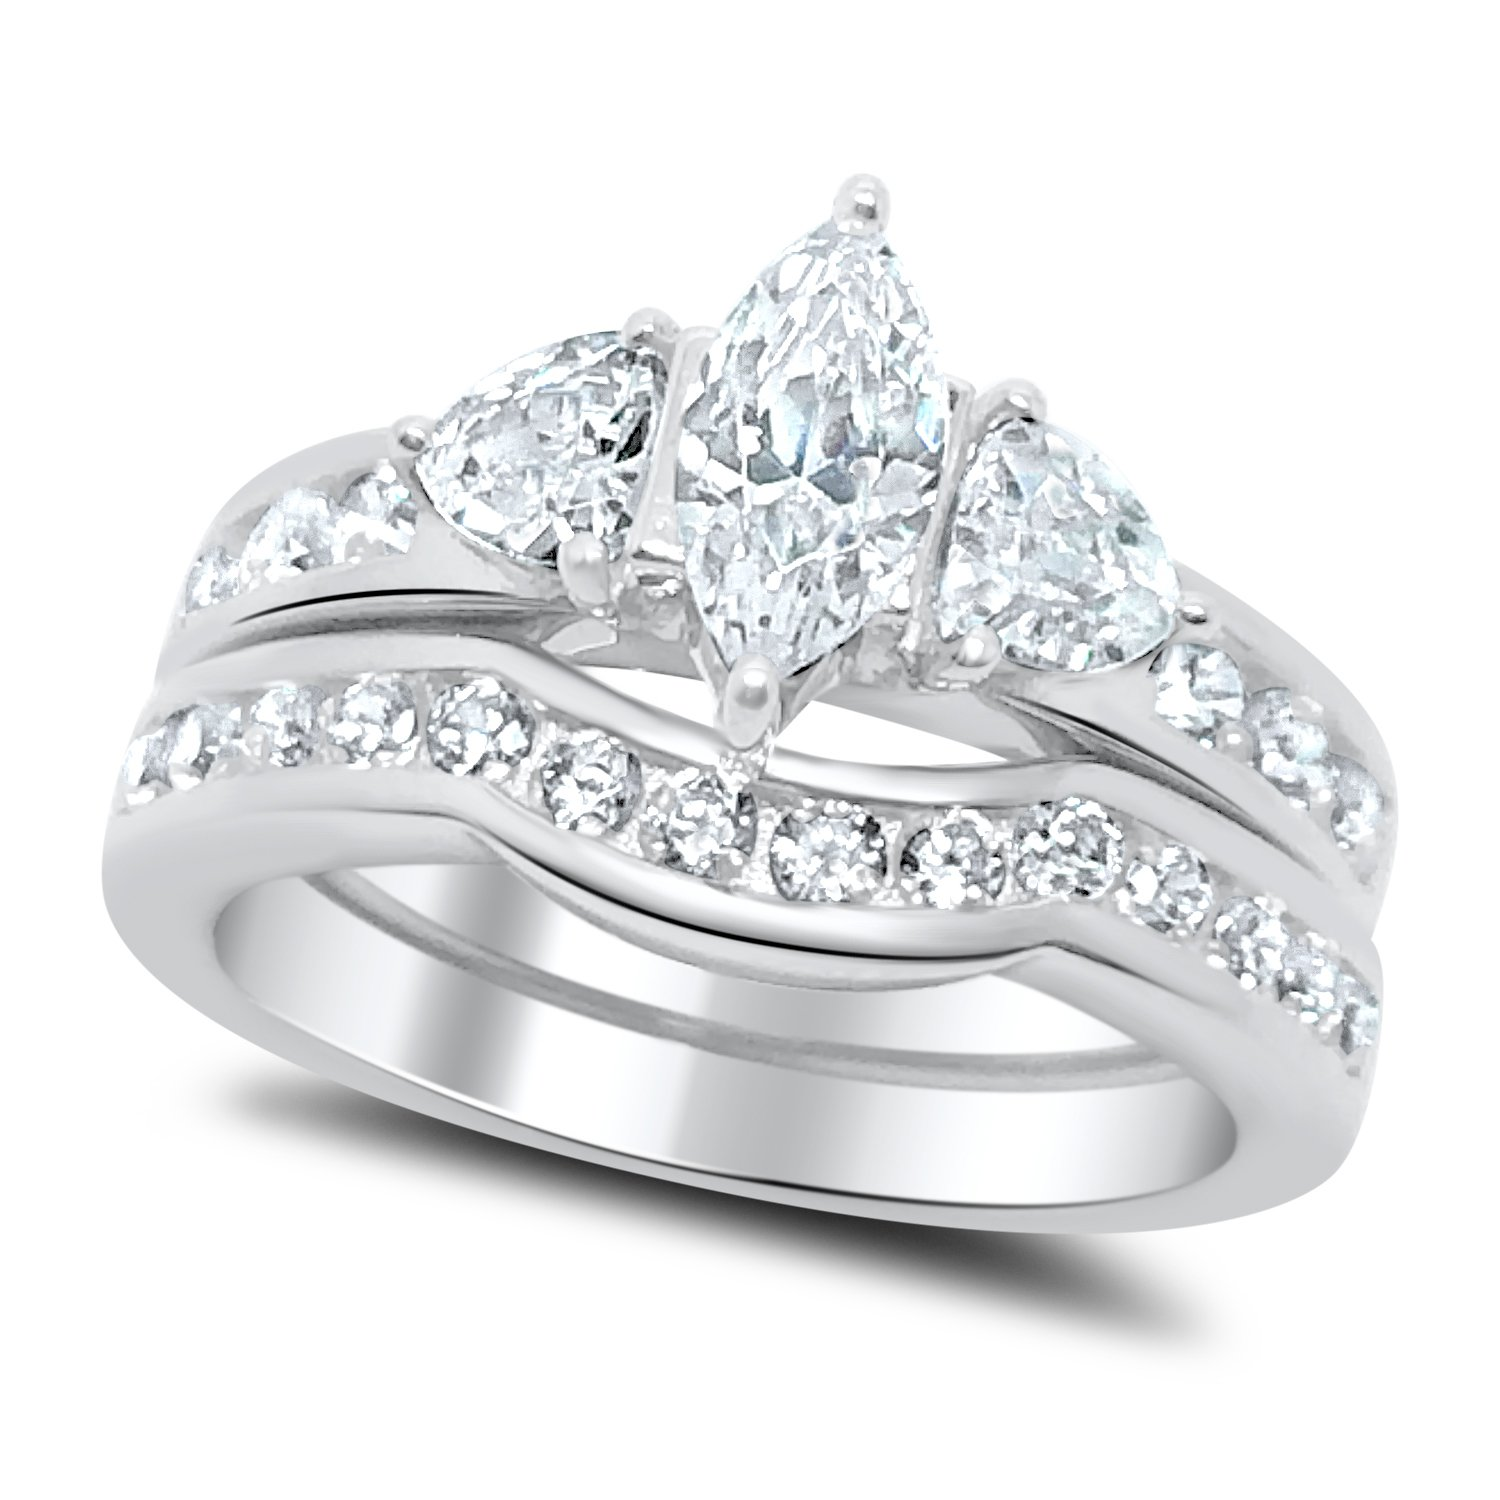 Marquise Trillion CZ Wedding Ring Set in Sterling Silver 10